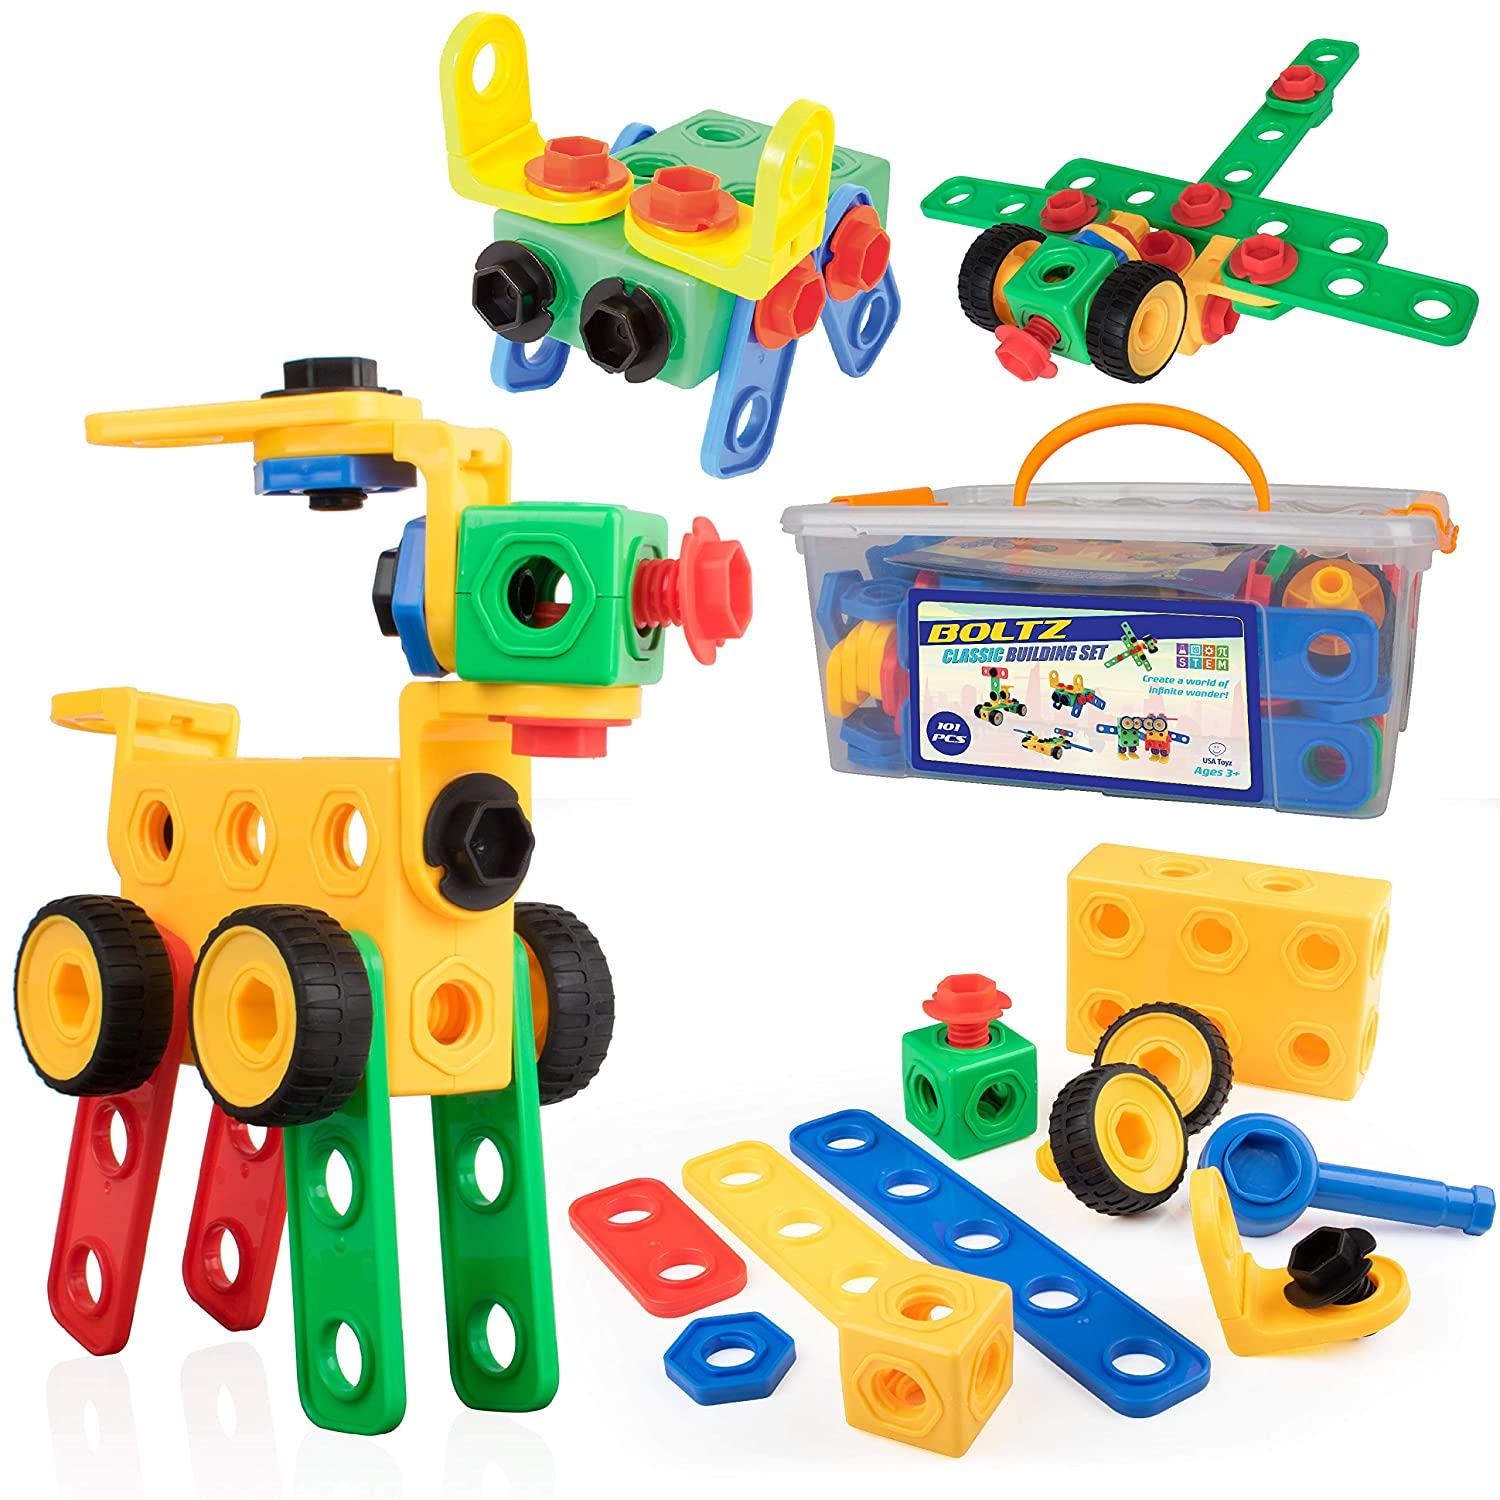 Top 9 Best STEM Toys for Toddlers Reviews in 2021 14